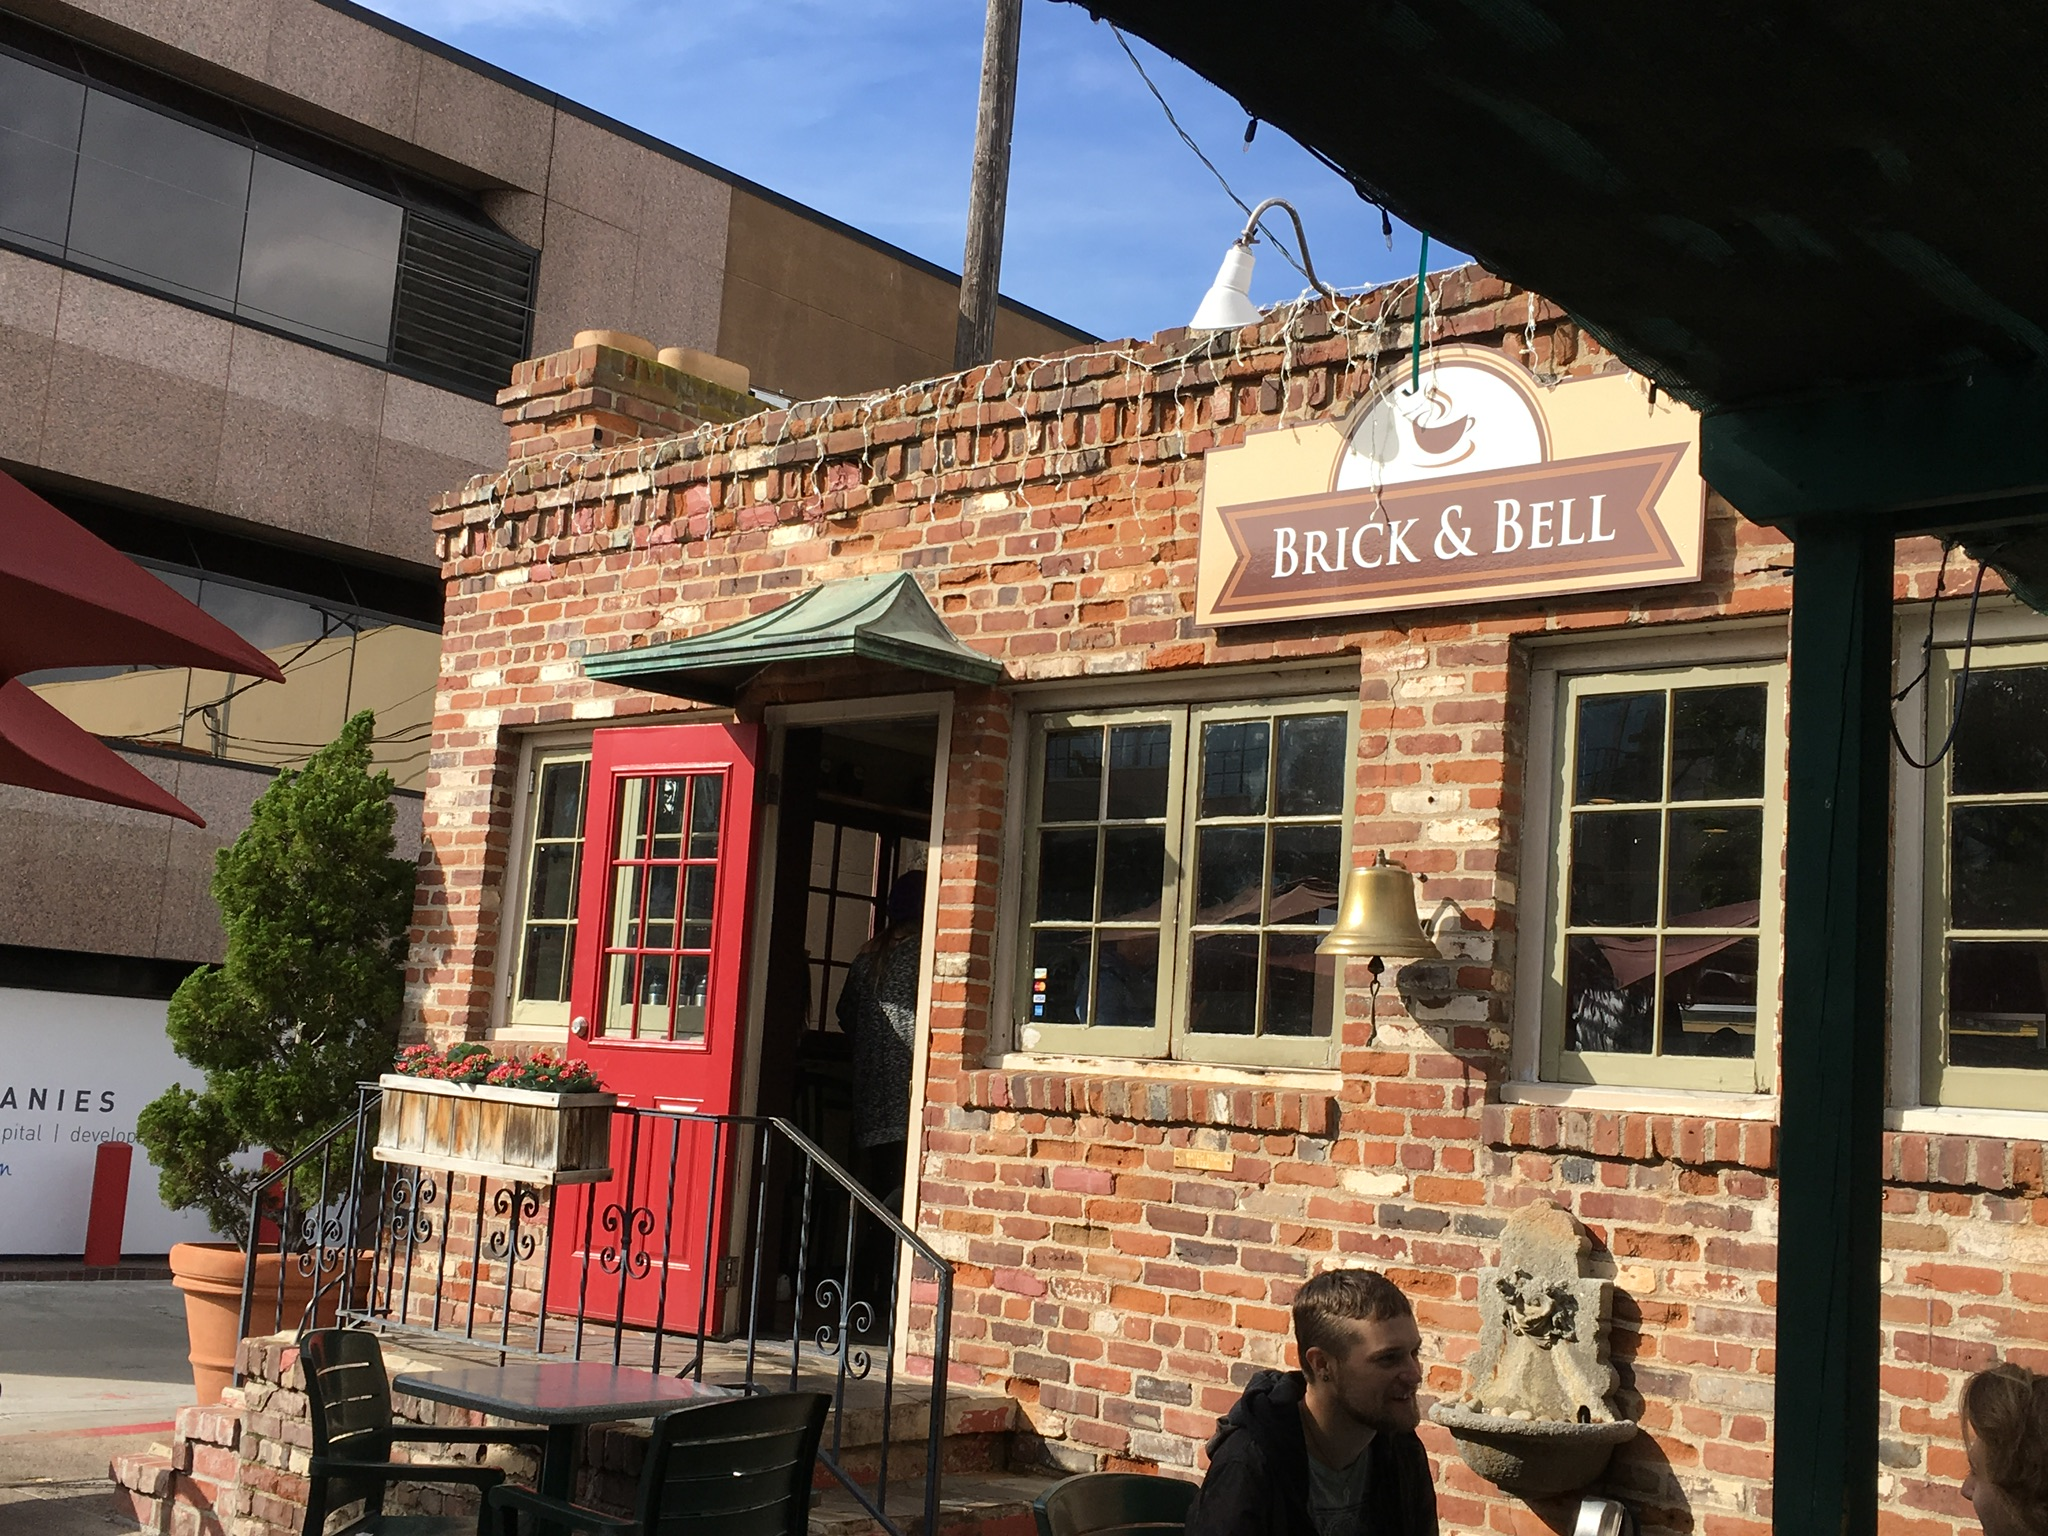 Brick and Bell restaurant.